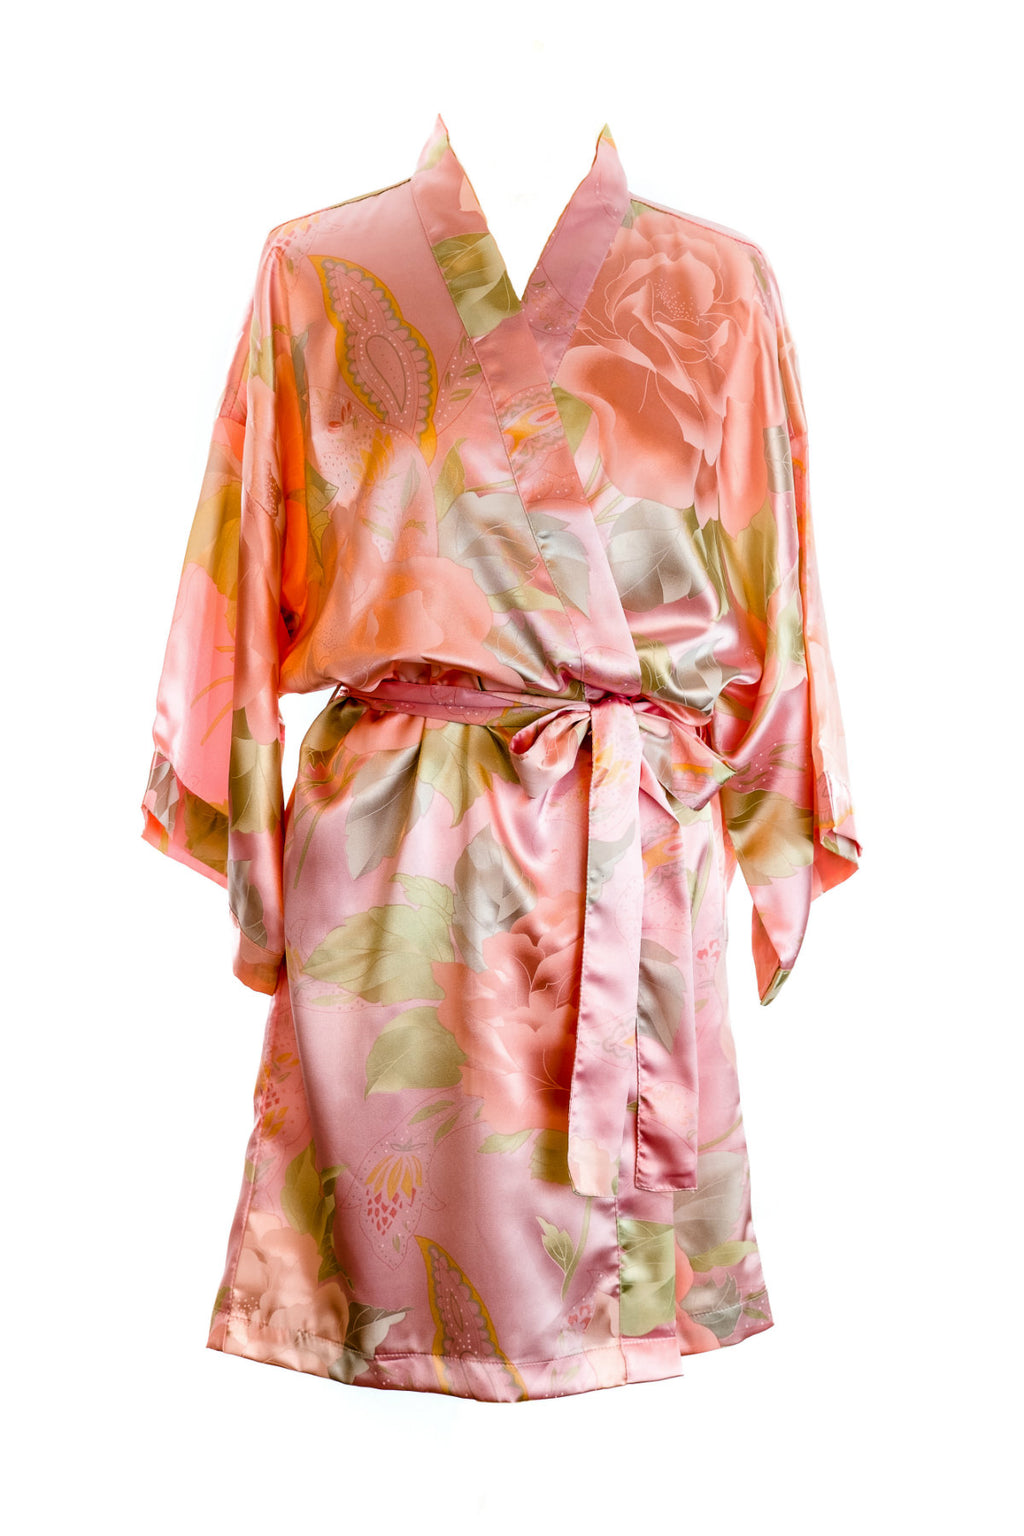 bride dressing gown,vintage floral,satin,bridesmaids robes